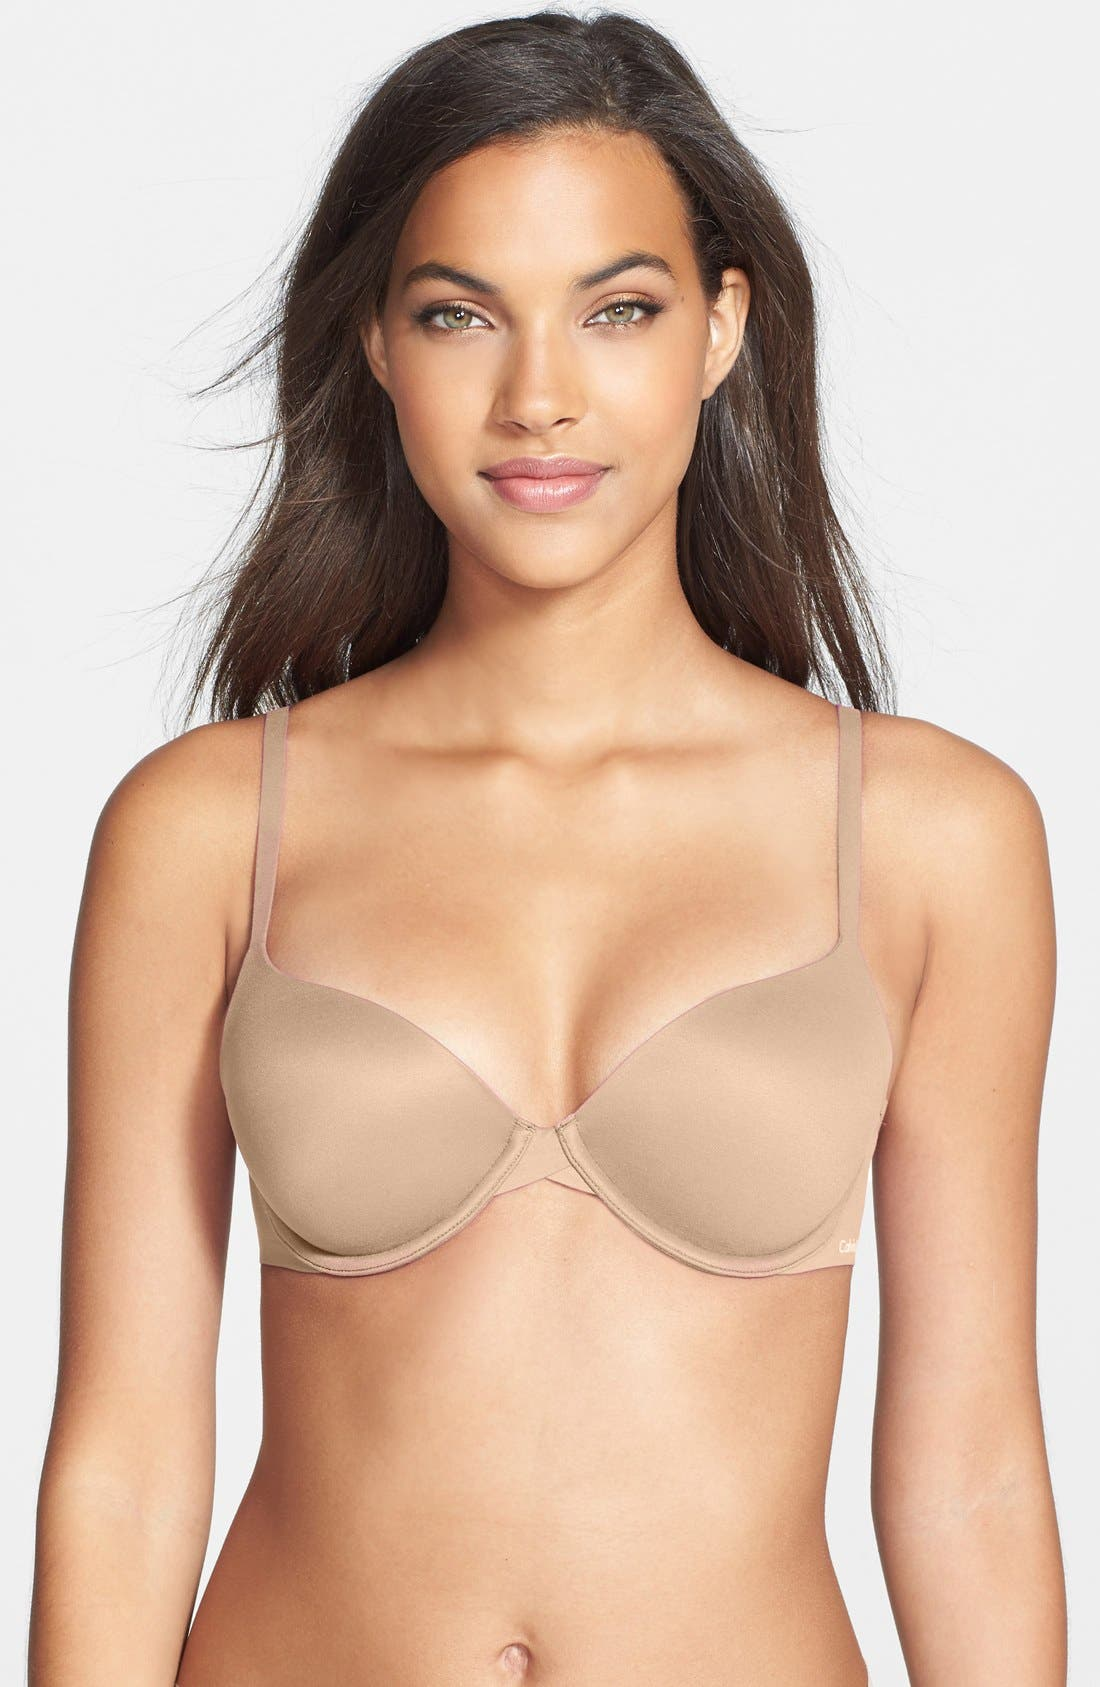 The t-shirt bra is an essential piece of every lingerie collection. When's the last time you wore a lace bra under a t-shirt? It's been a while, right? Because there's a time and place for textured and intricate bras, but while wearing a t-shirt is not one of them. How often do you need to.